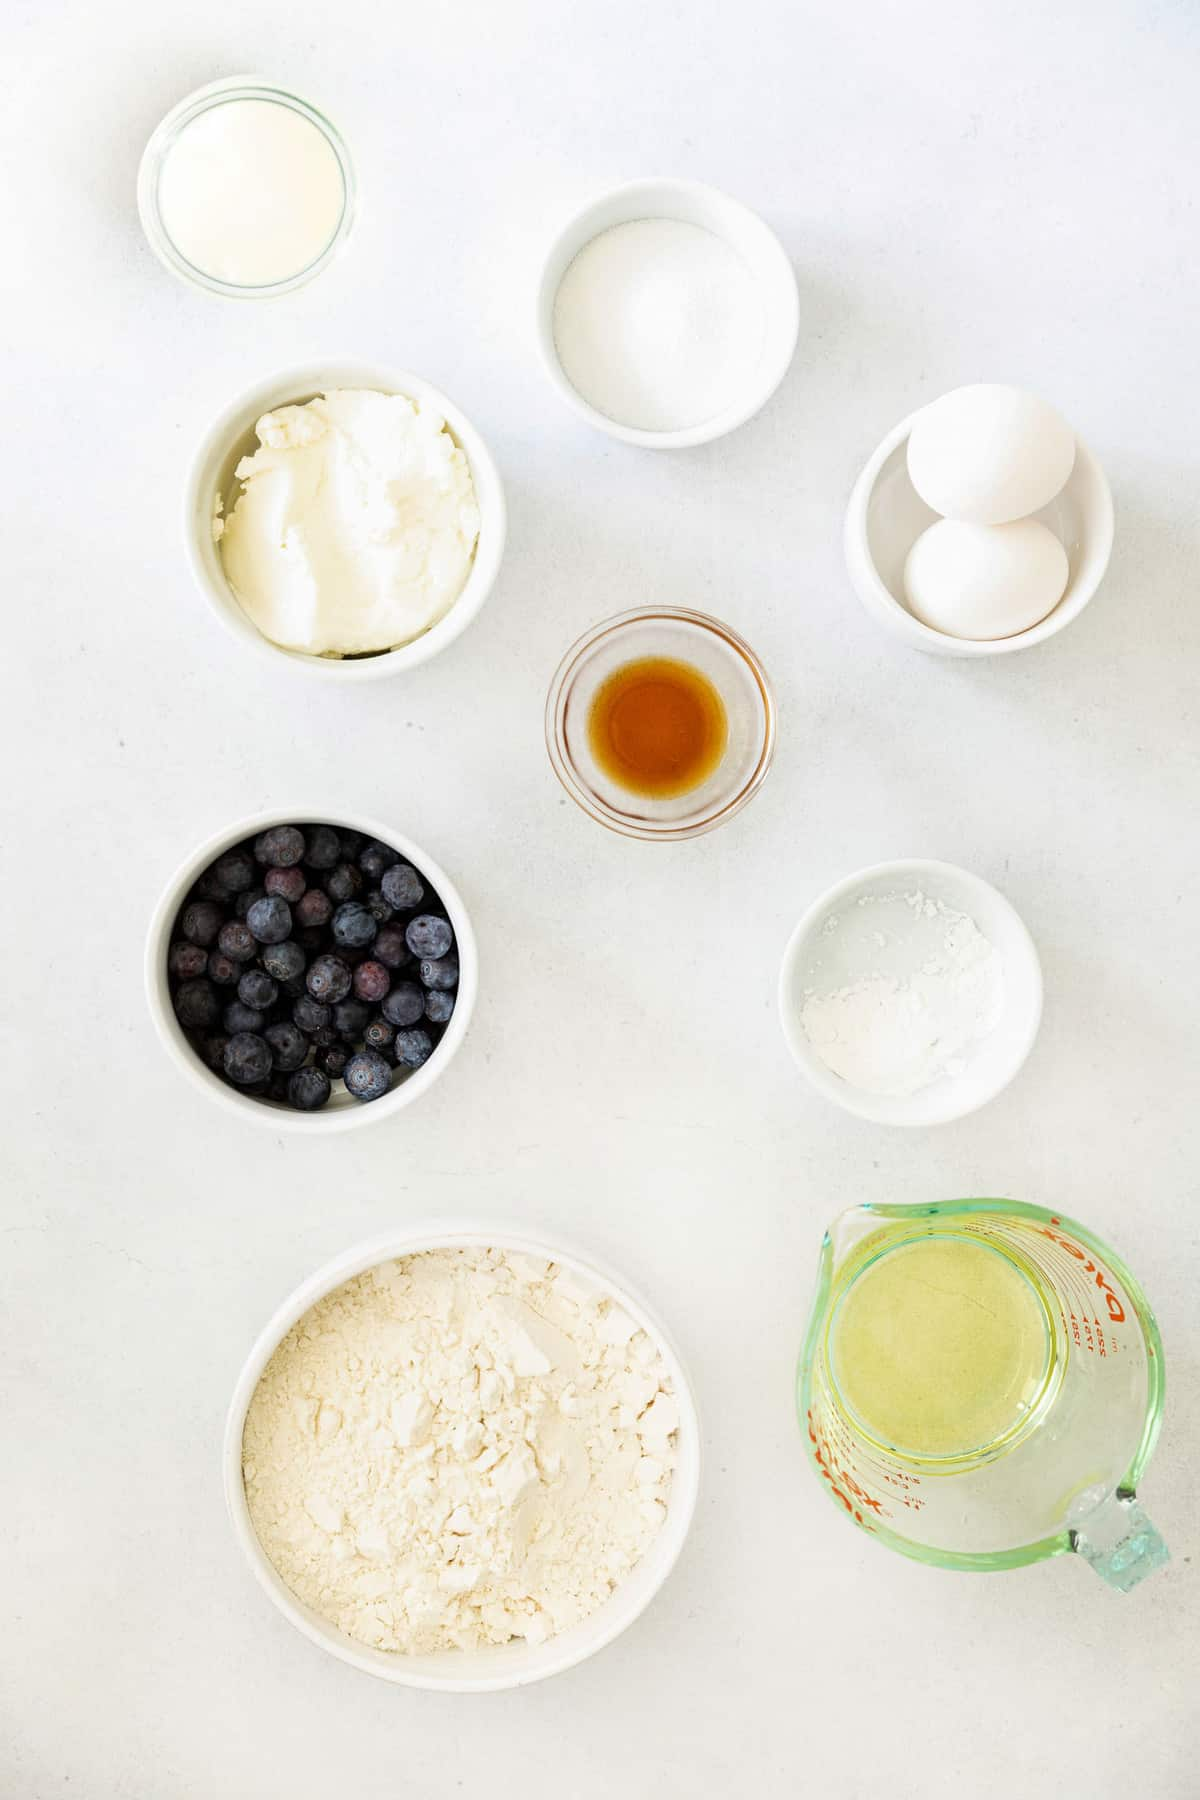 Overhead view of ingredients needed for recipe, including ricotta cheese and blueberries.